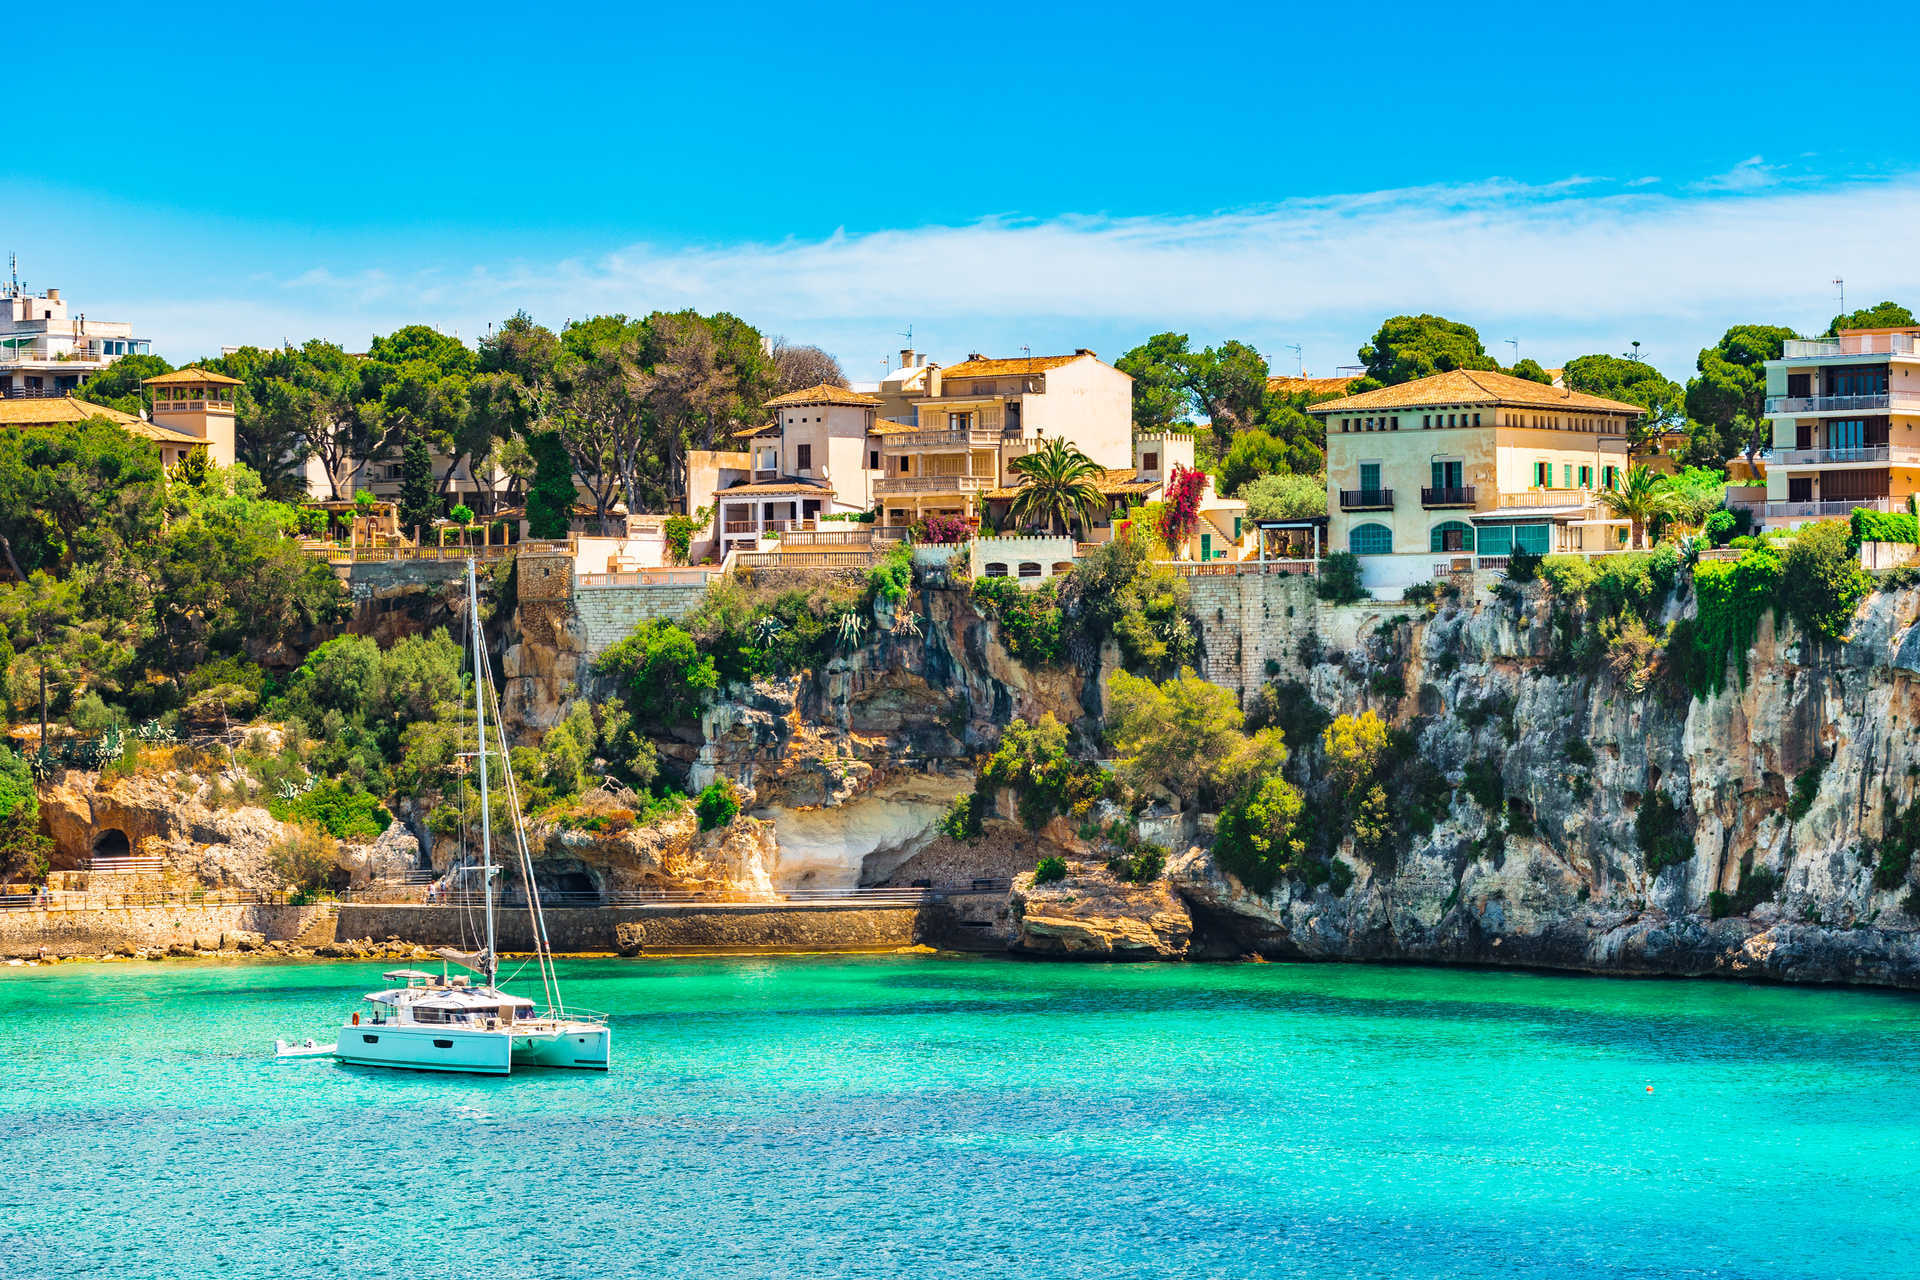 What you cannot miss in Majorca